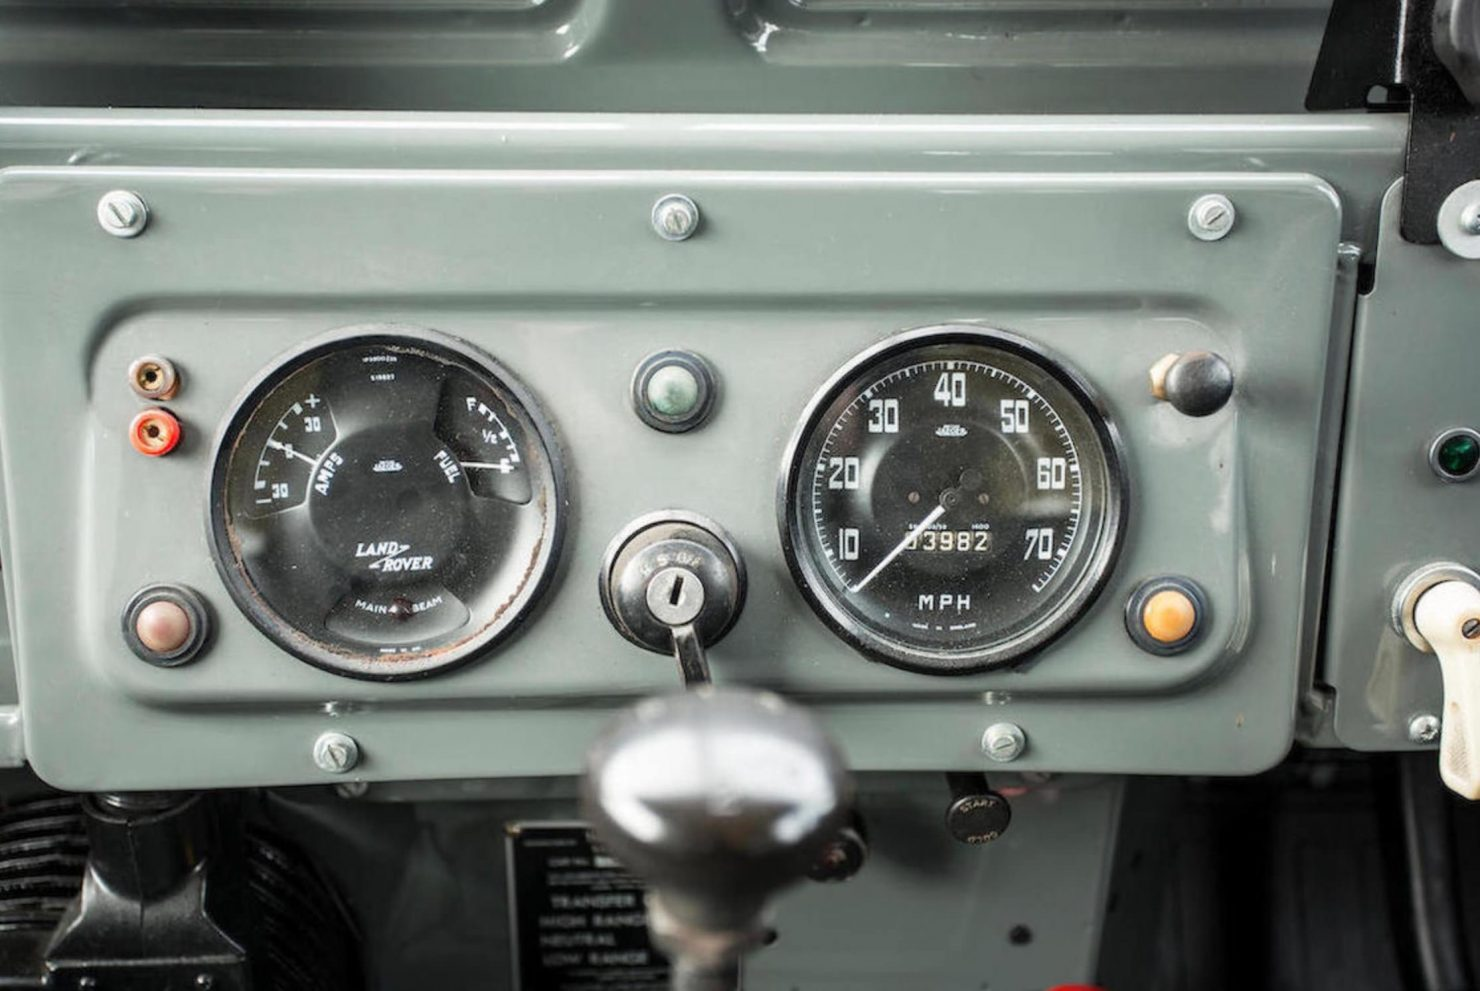 land rover Cuthbertson 9 1480x991 - 1958 Tracked Cuthbertson Land Rover